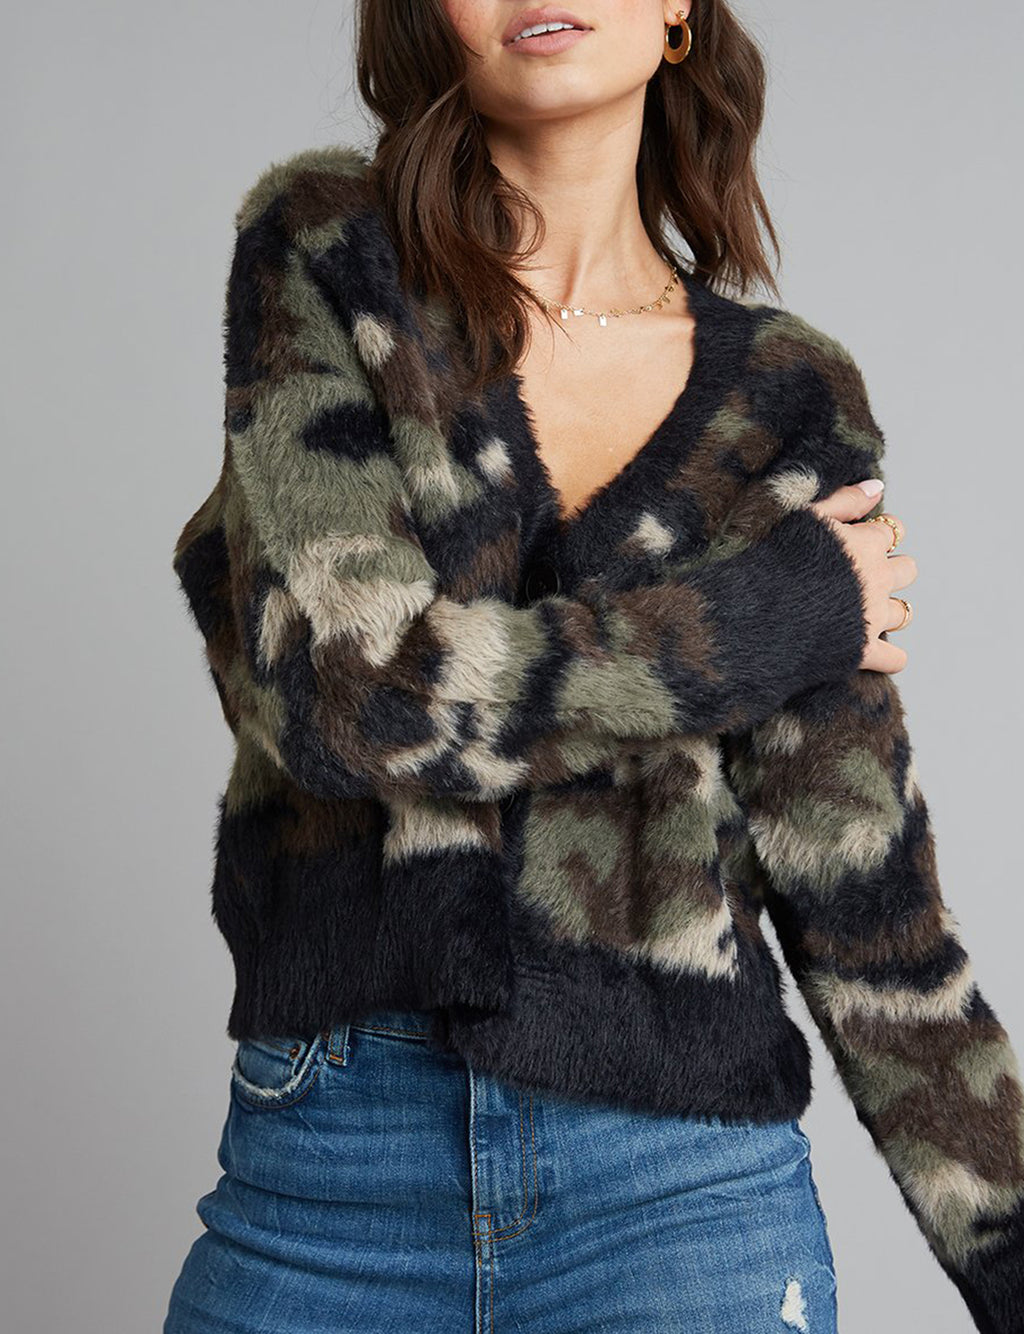 Fuzzy Camo Cardigan in Green/Black